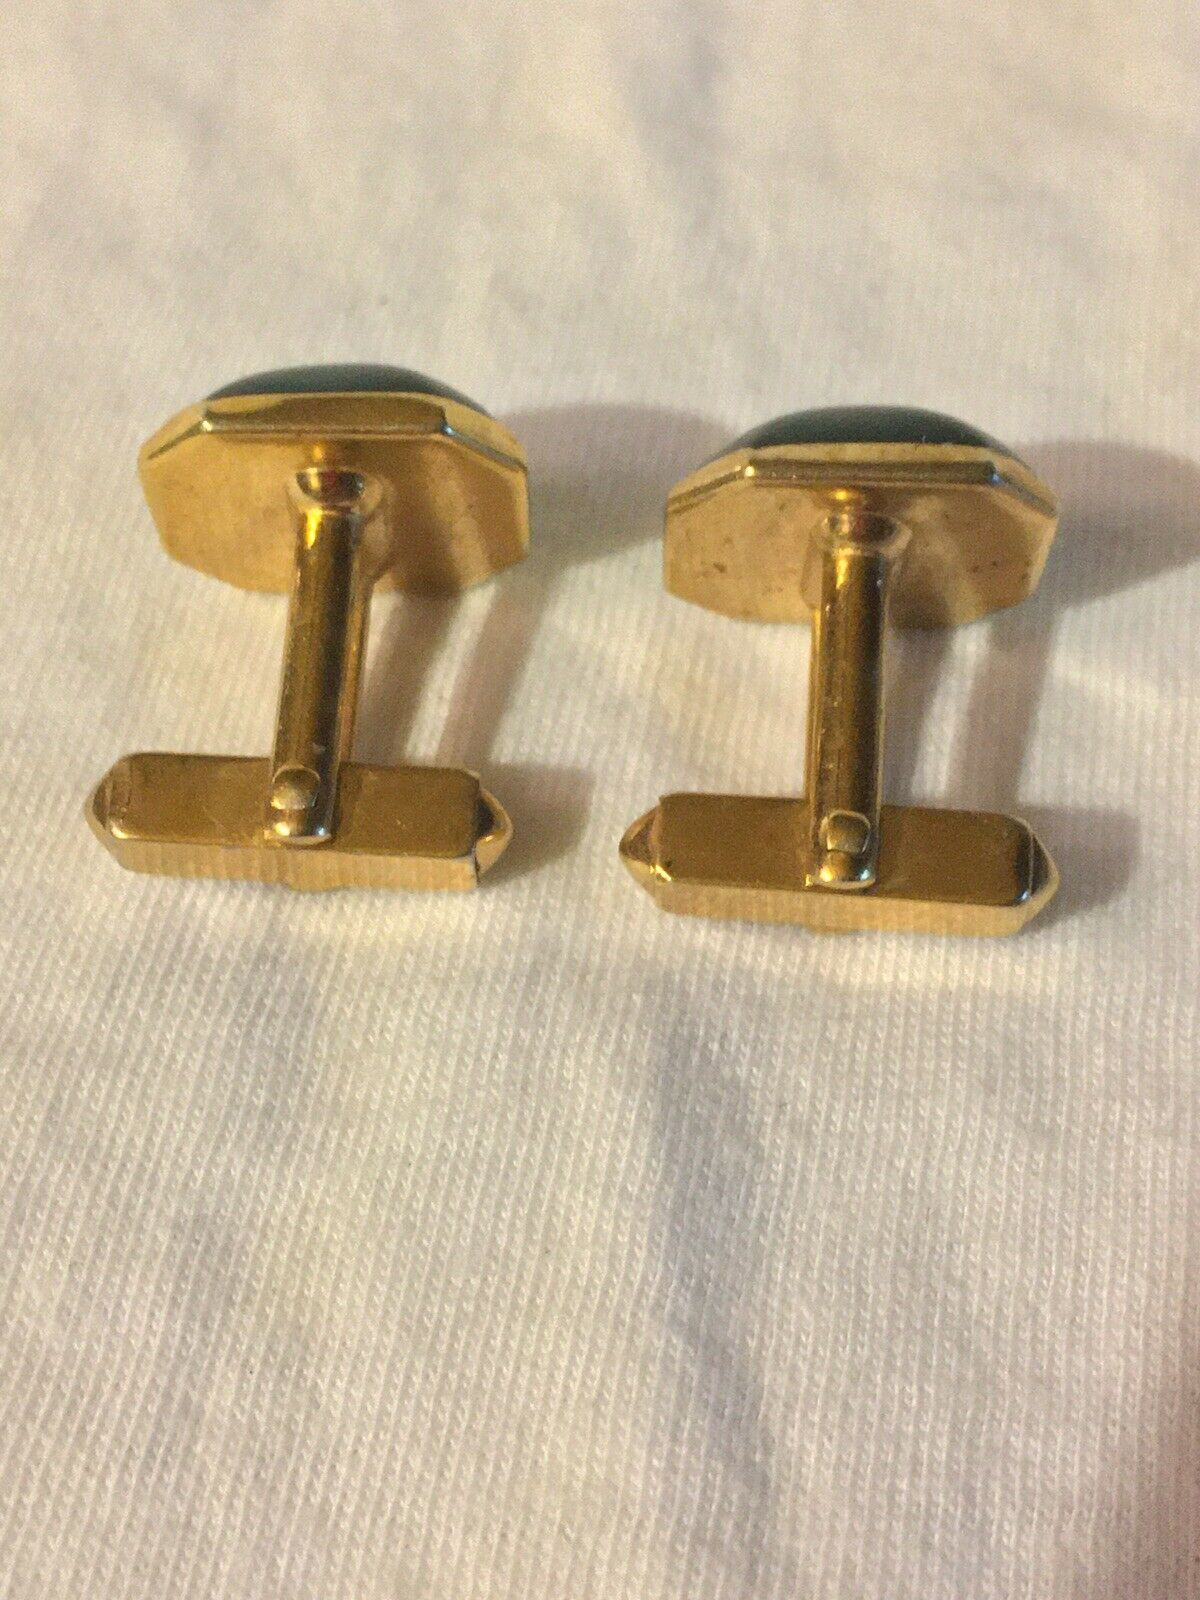 Vintage Swank Silver With Blue Lucite Cufflinks Hipster Cuff Links